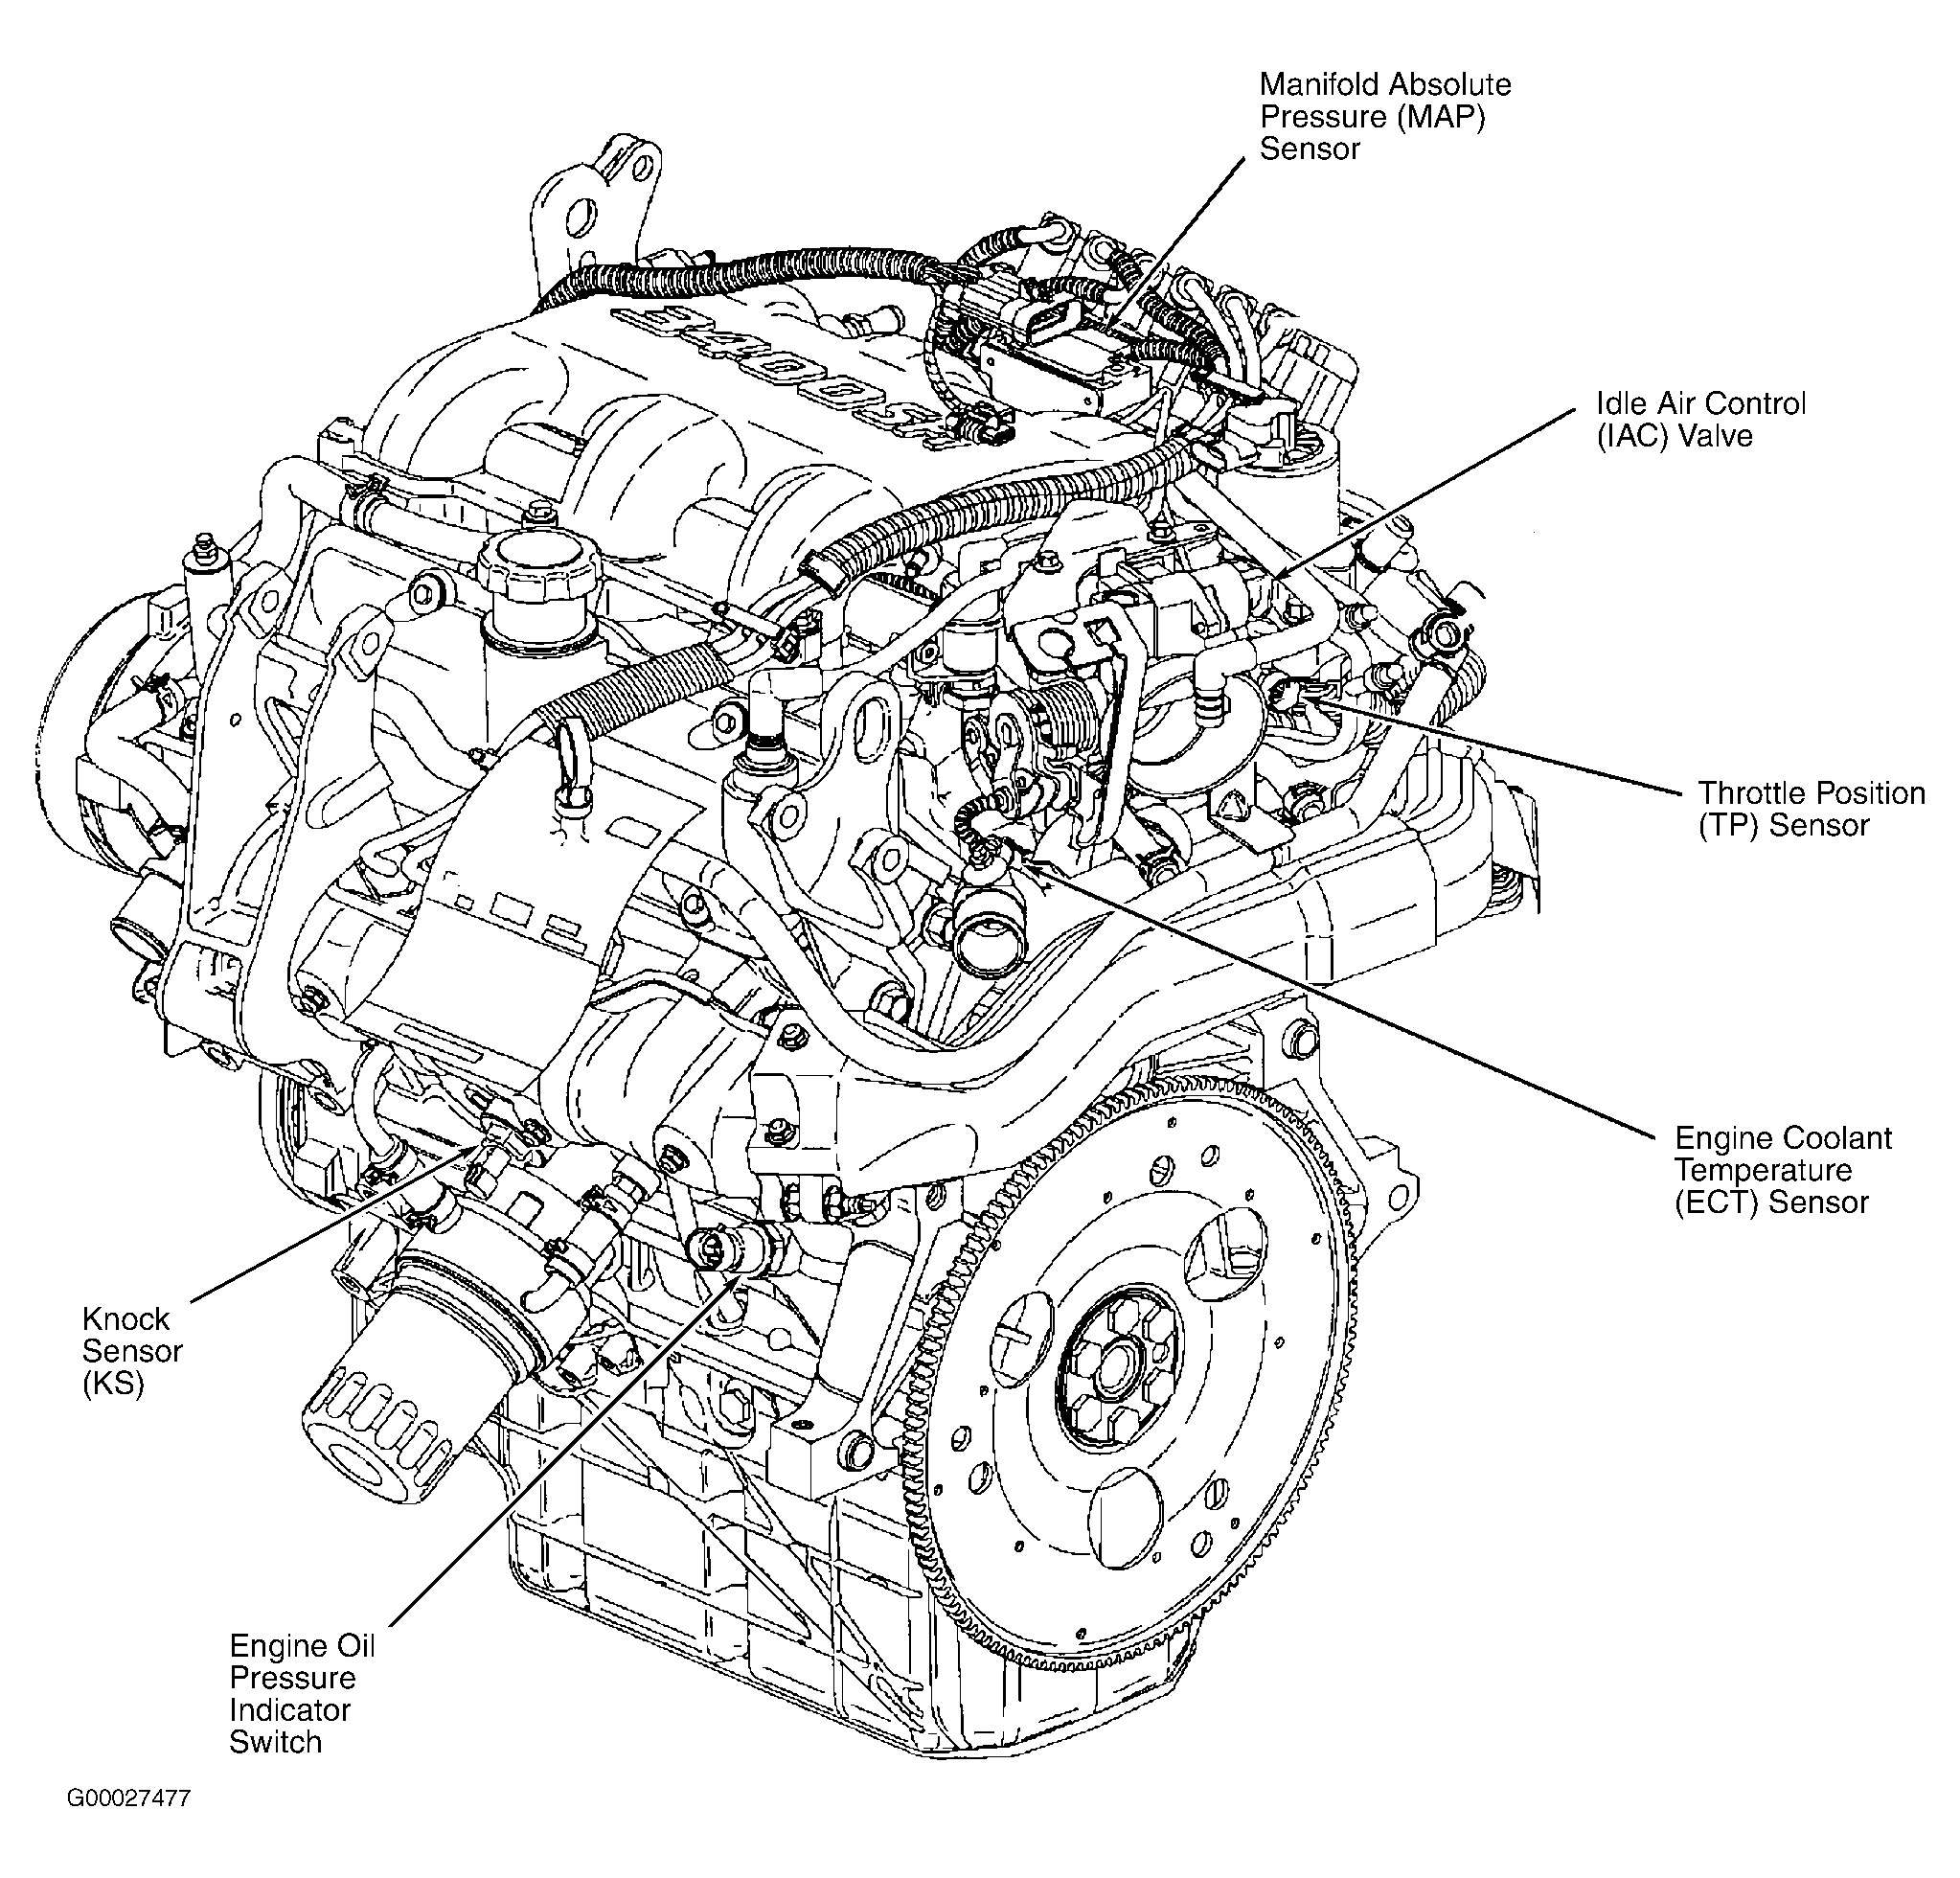 95 Blazer Wiring Diagram further Chevy Astro Rear Brake Diagrams further 6tvdp Chevrolet 1500 Silverado Chevy Silverado Not Starting No Power as well RepairGuideContent together with 5x5ap 2005 Chevy Impala Need Replace Starter Cyl. on 2002 chevy cavalier radio wiring diagram